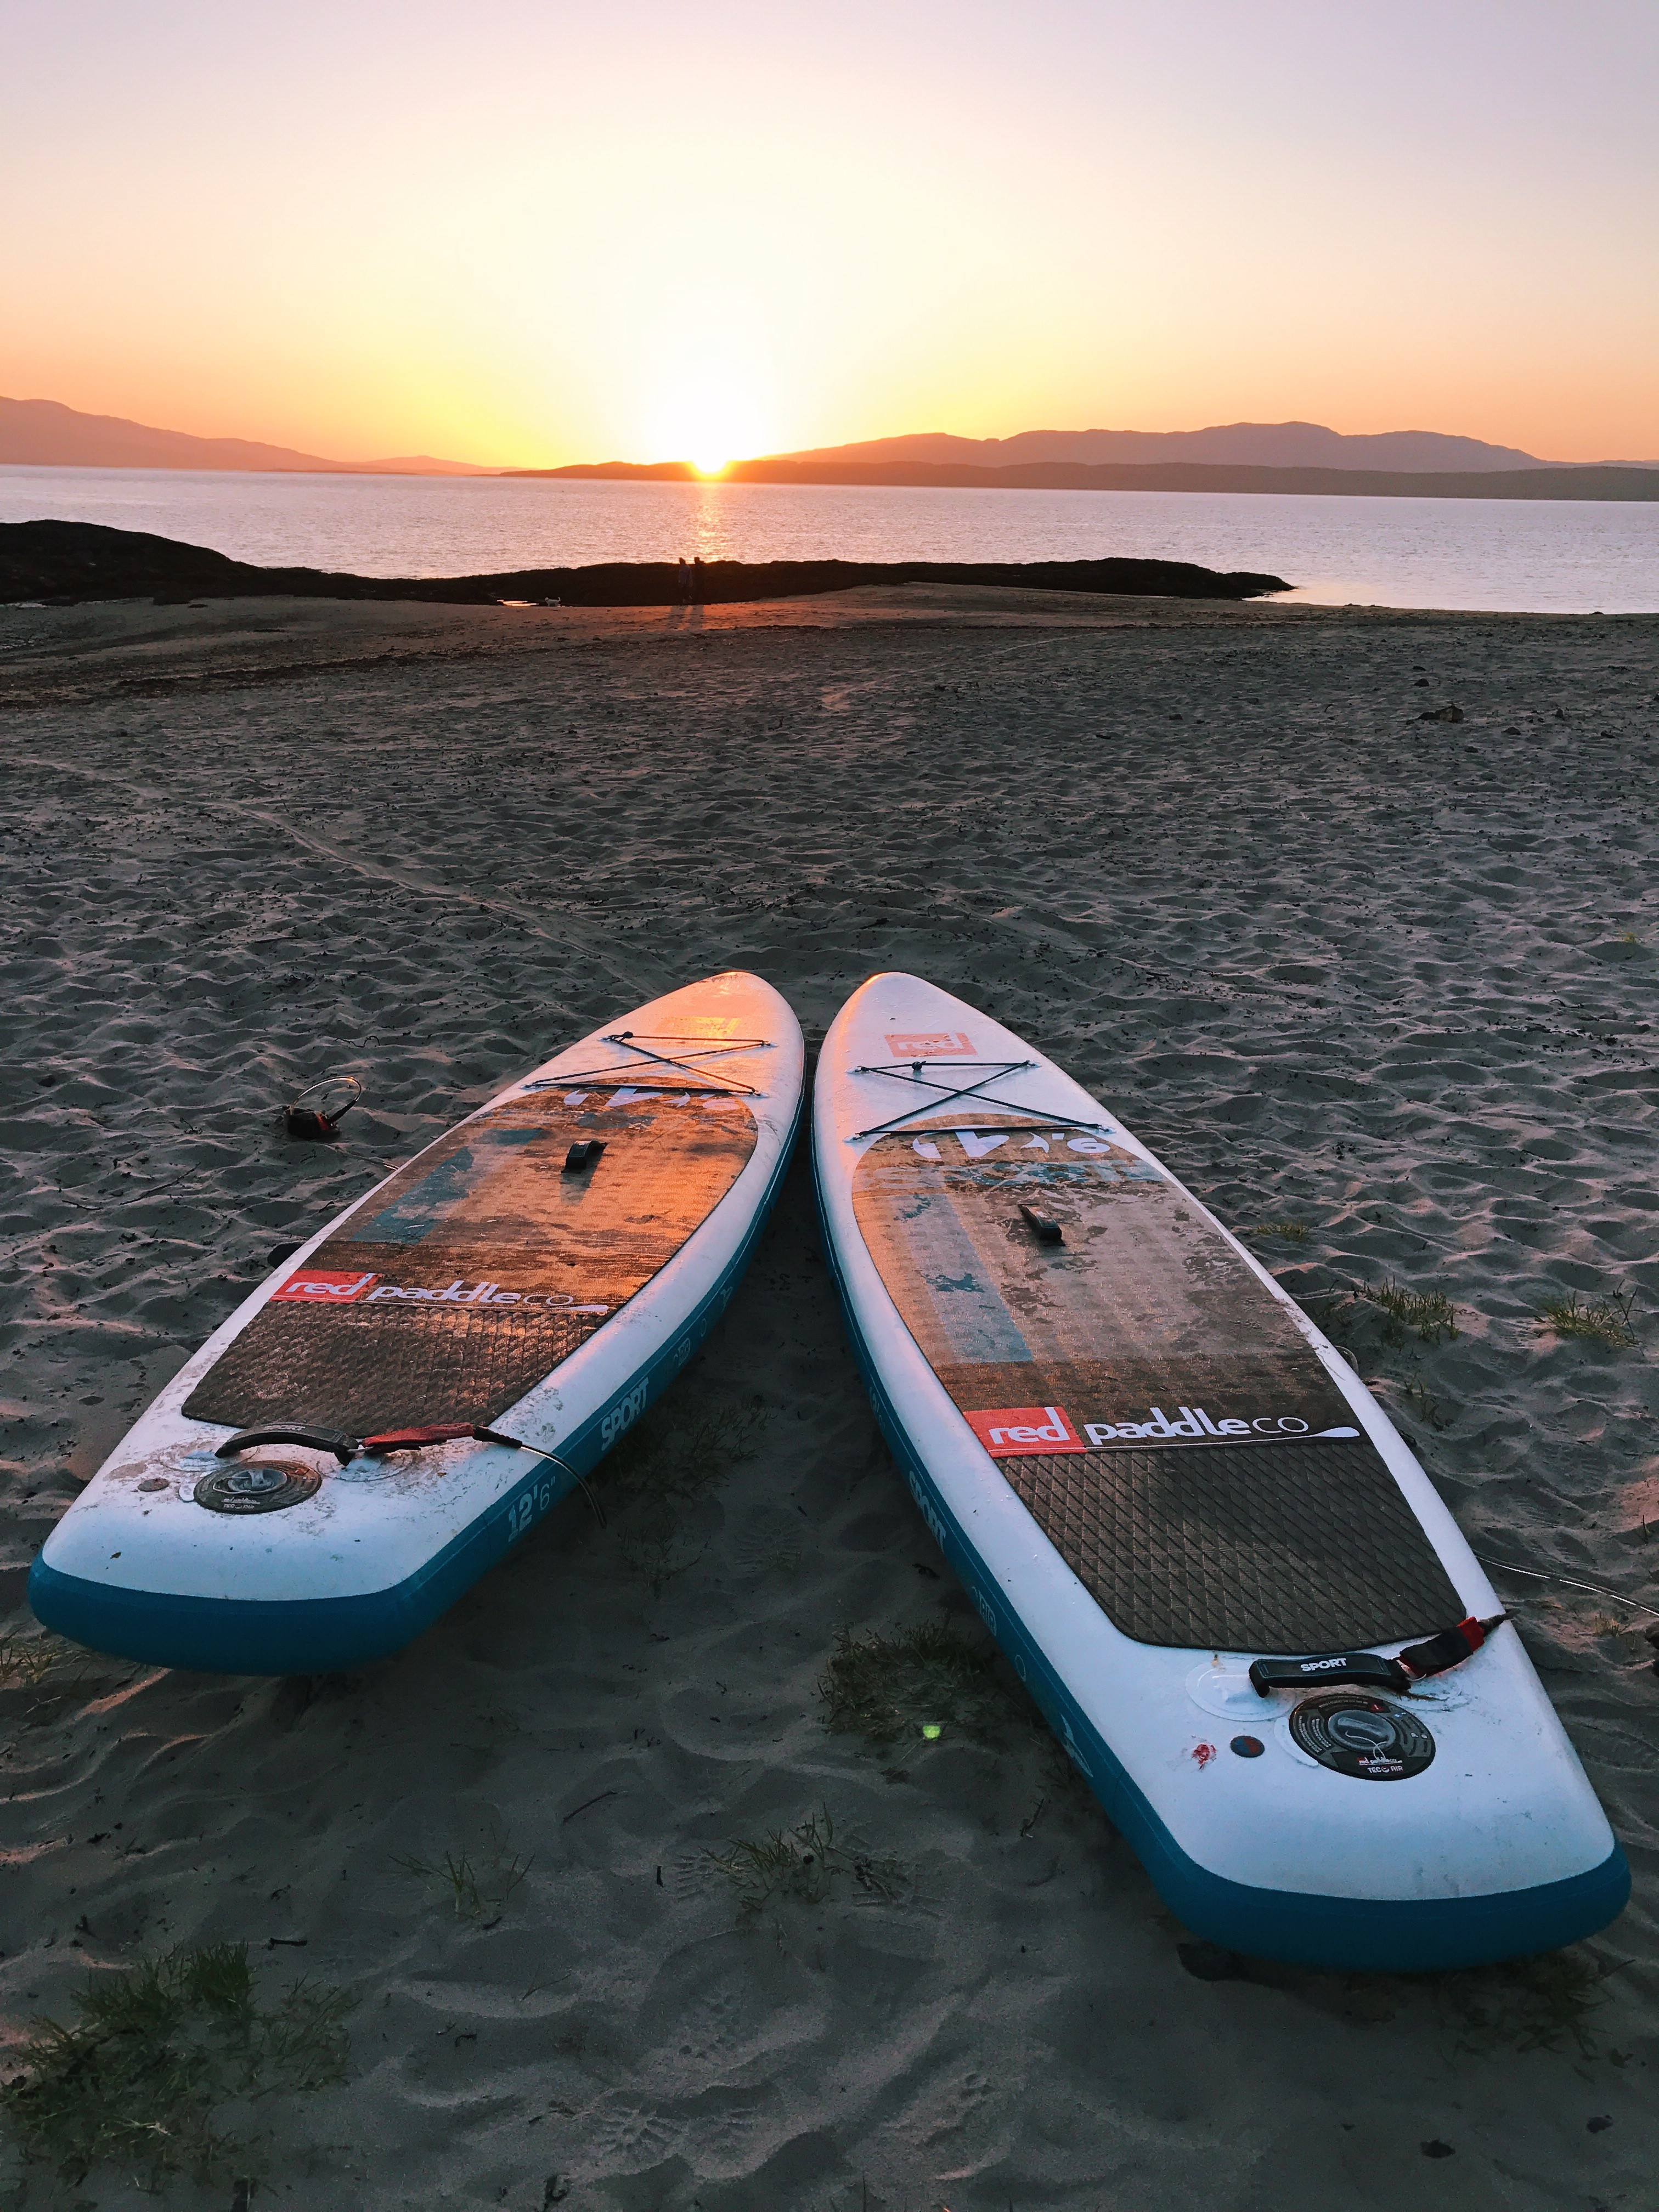 Red Paddle boards at sunset